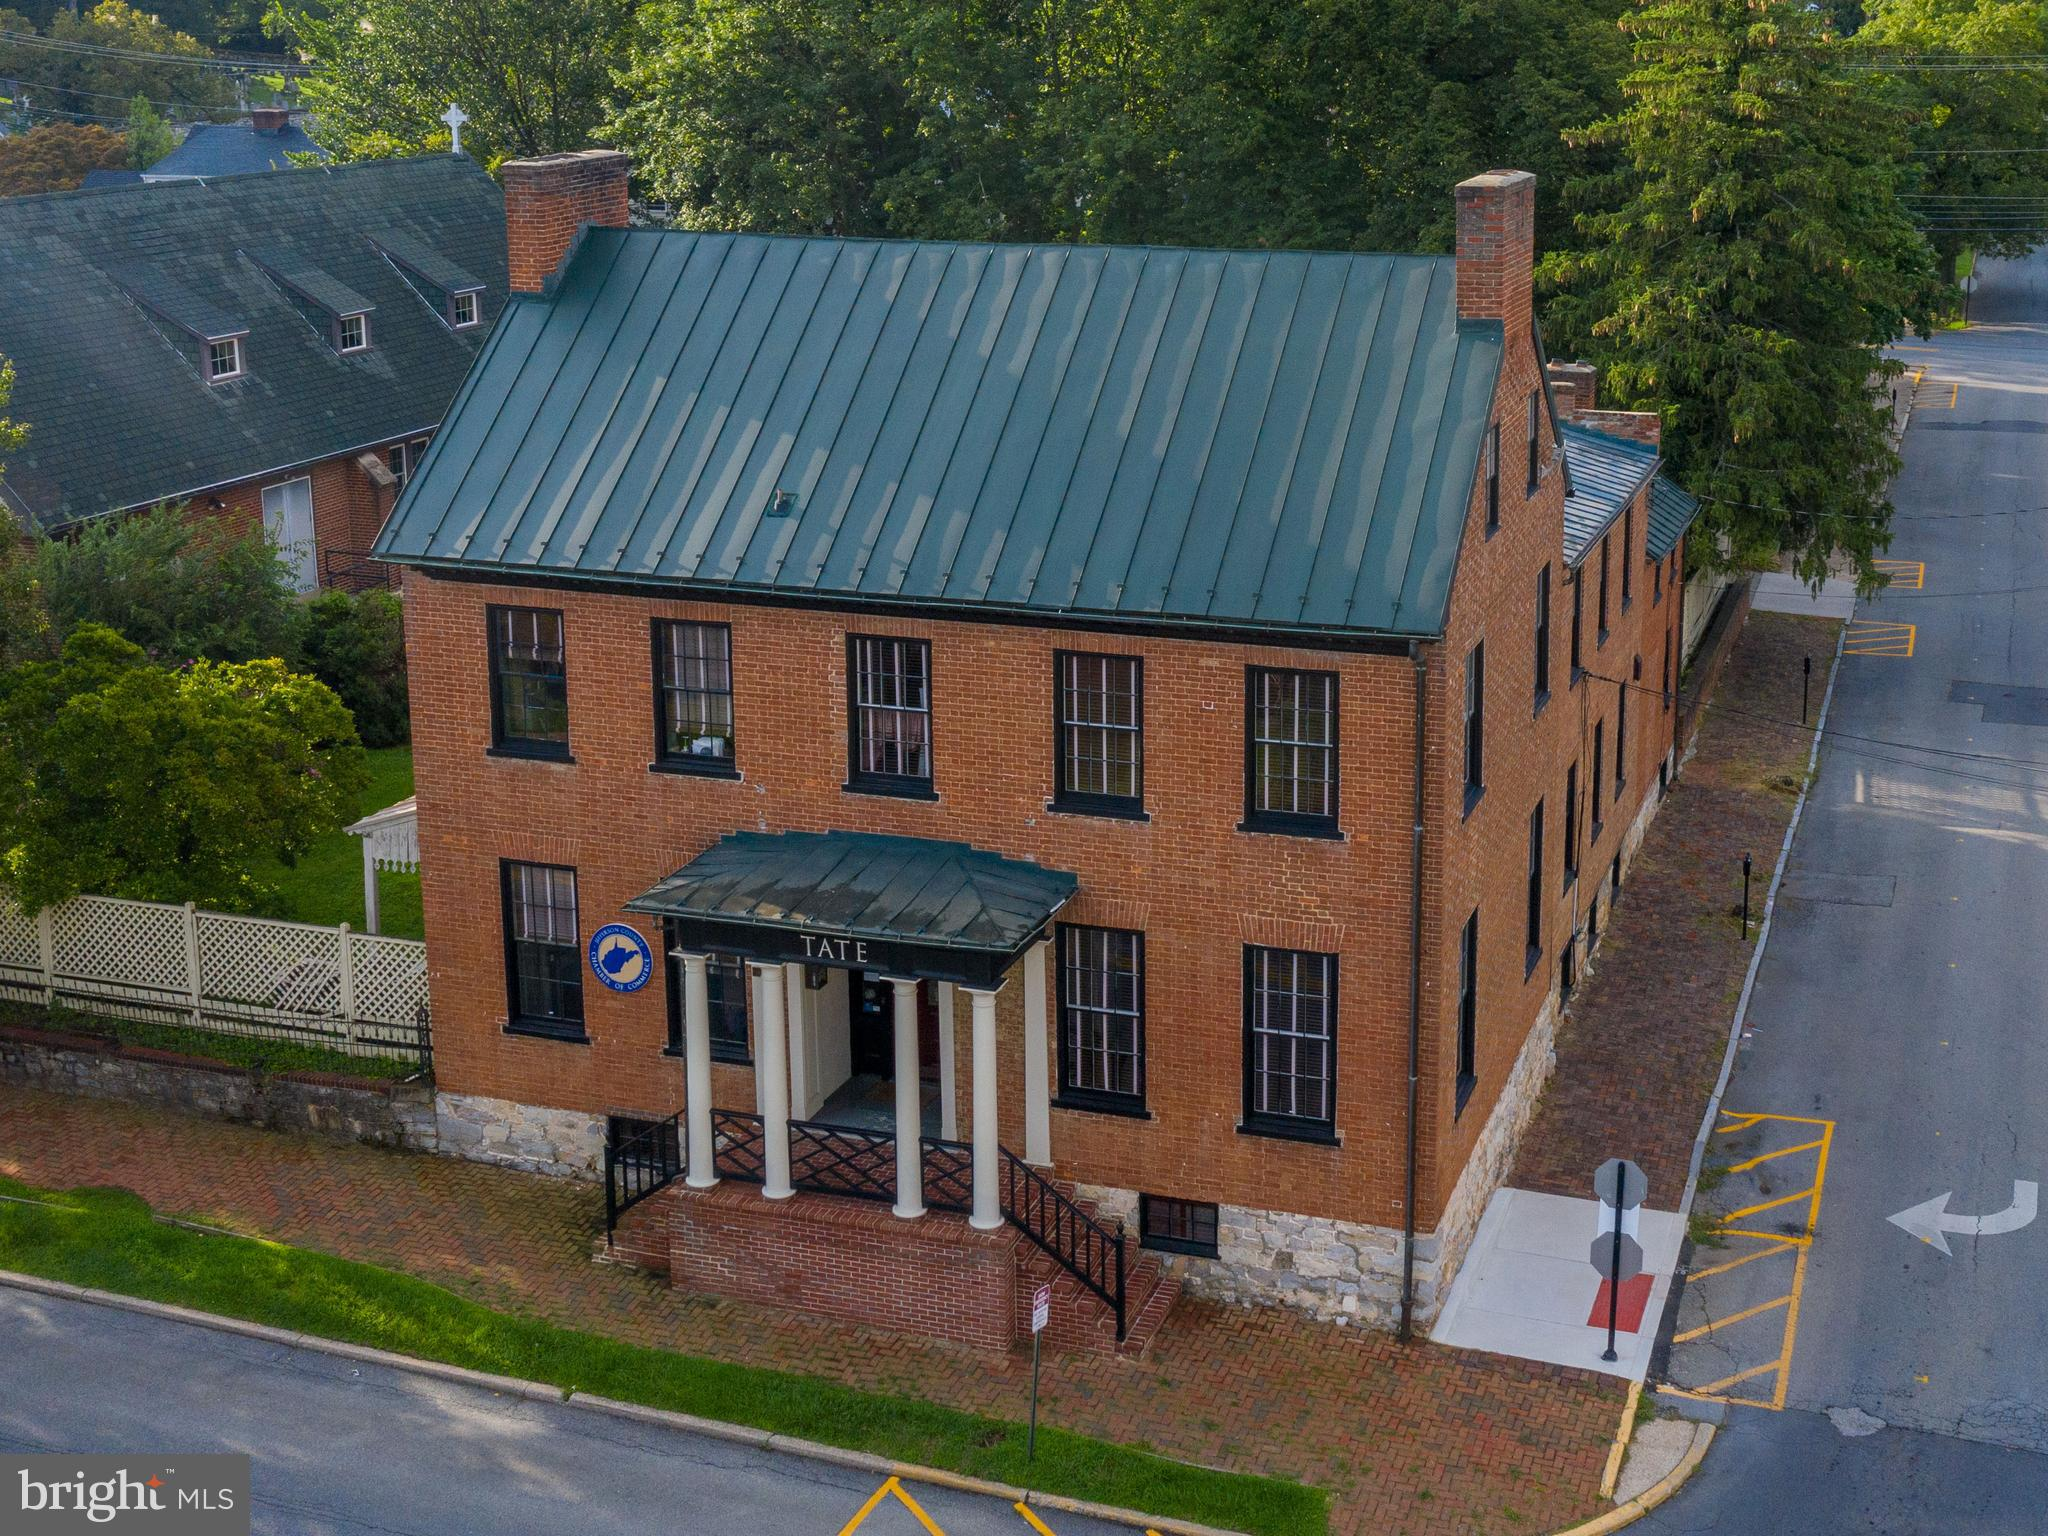 The historic Tate House, nestled in downtown Charles Town, was built in about 1797 and is extremely